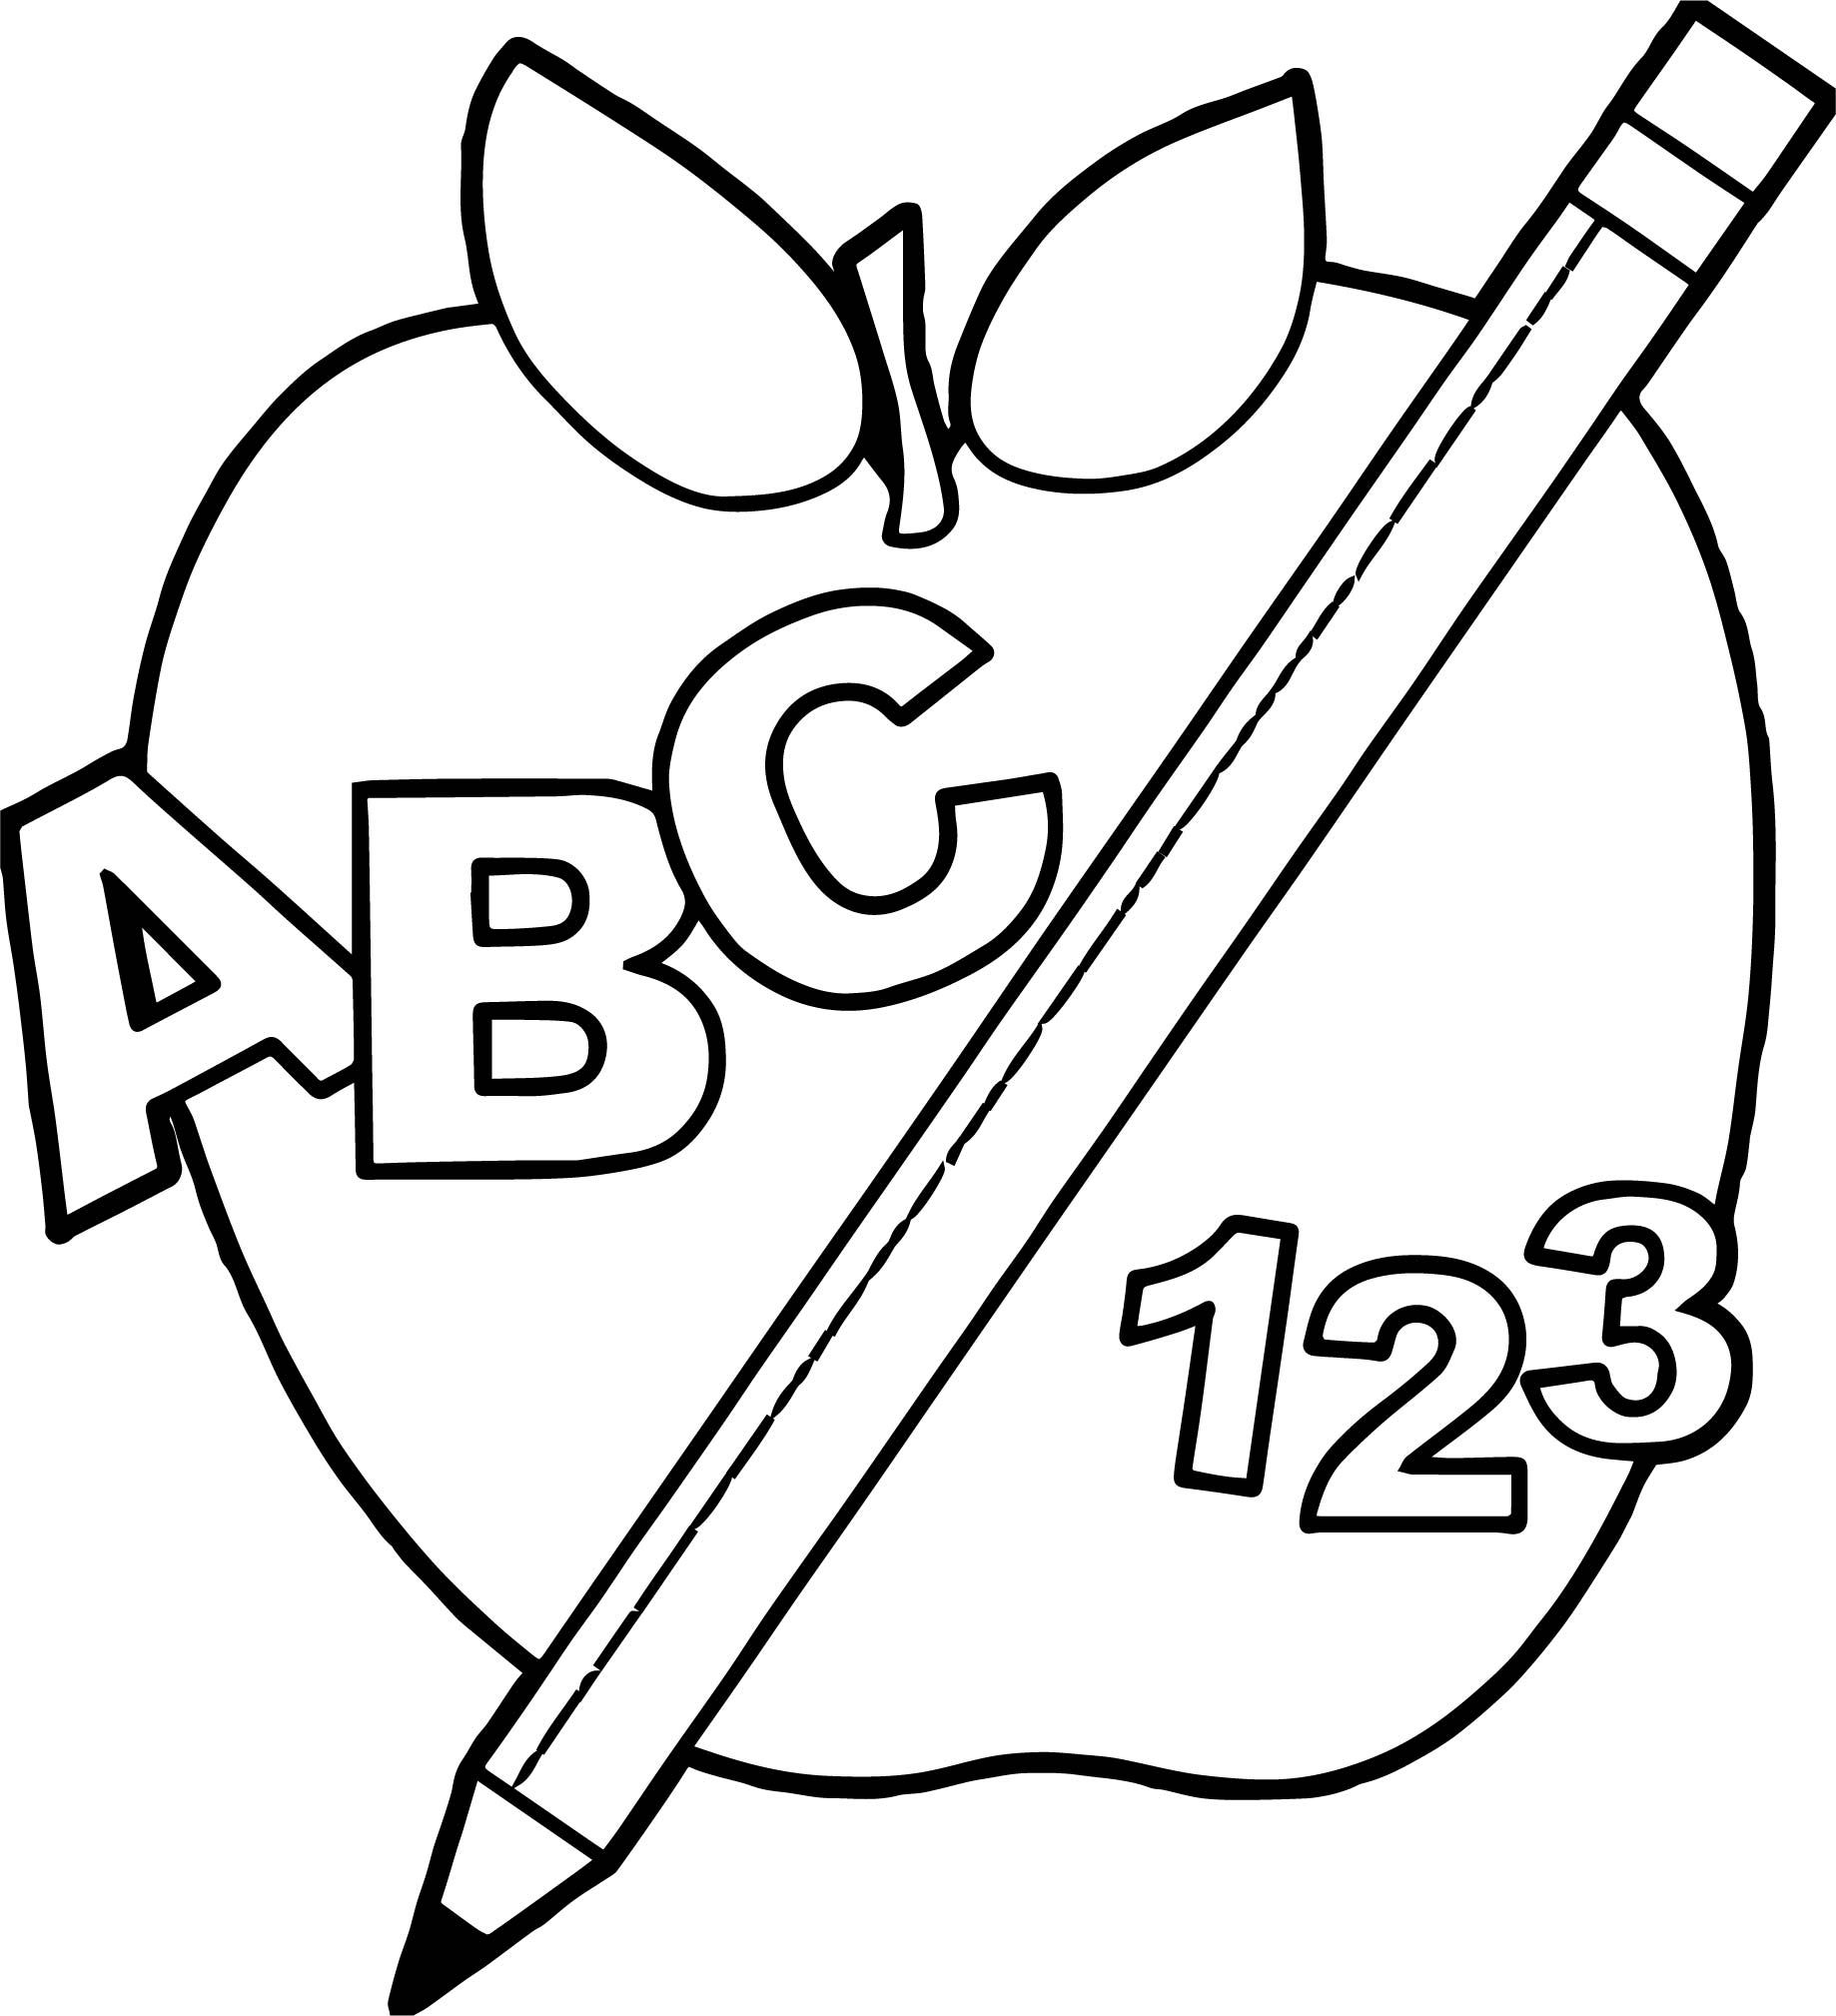 Coloring Pages: Print Coloring For Kindergarten Toddler Educations.